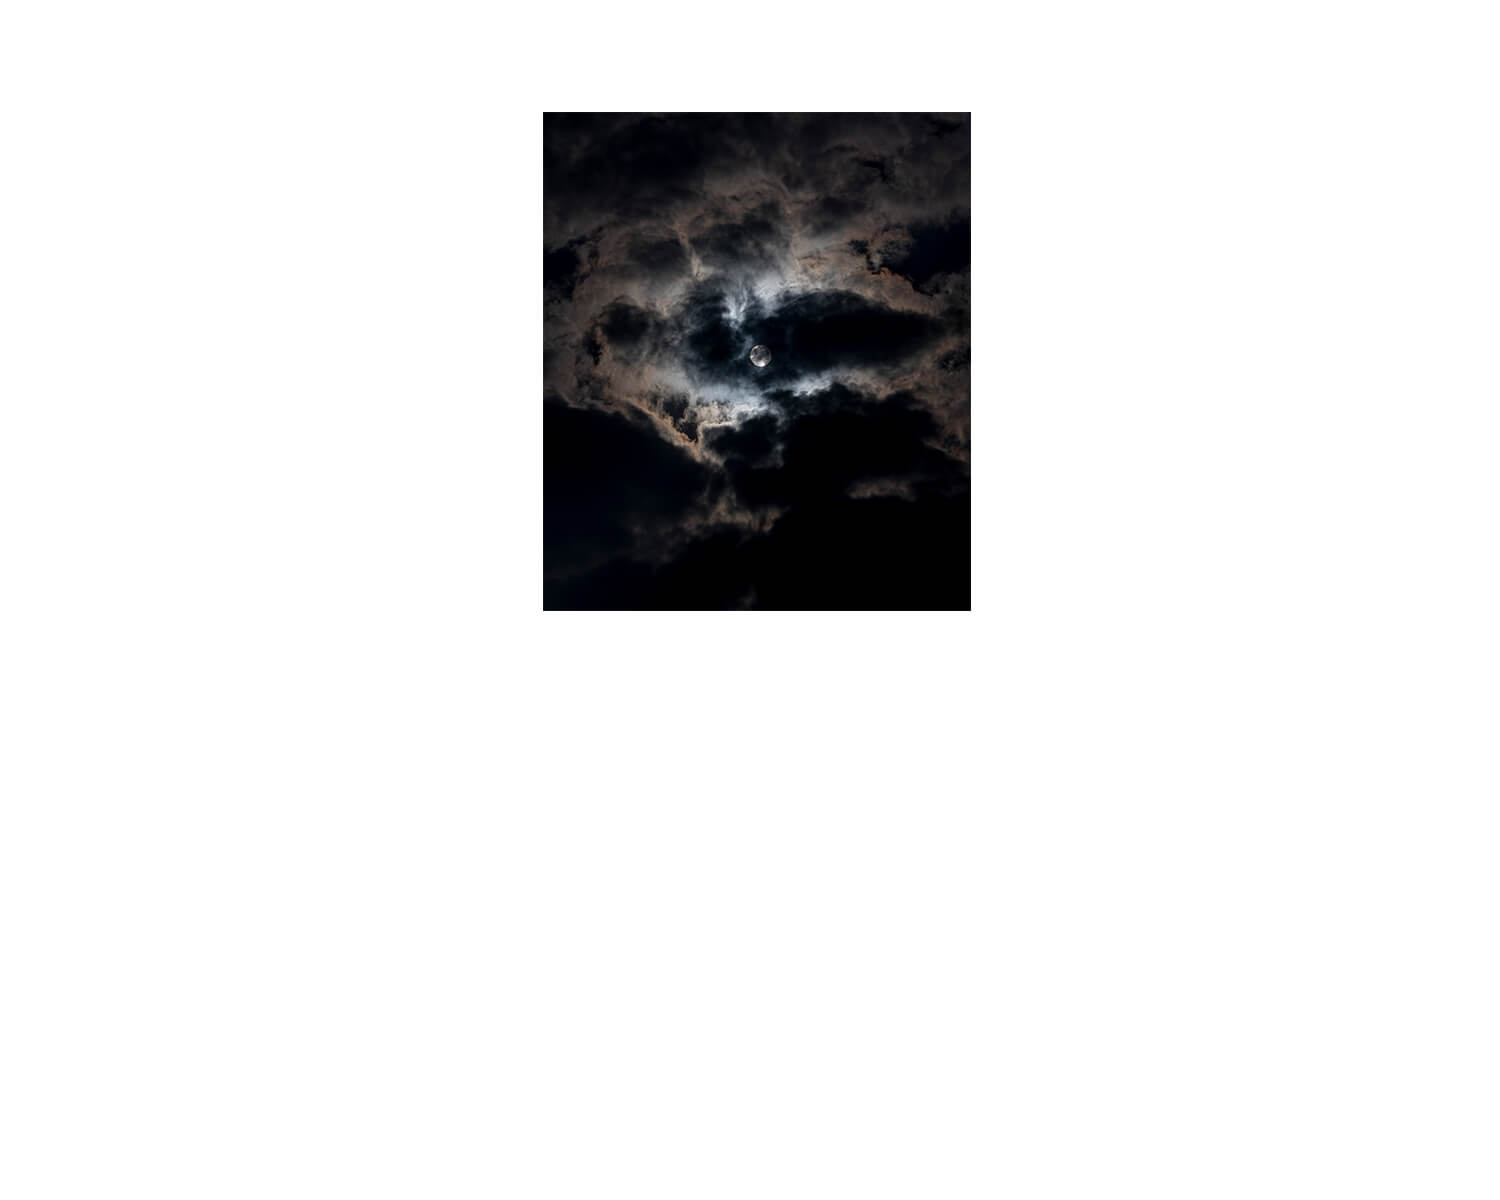 Tony Mak - To The West Of The Solitary Sea. Black night sky with moonlight behind clouds